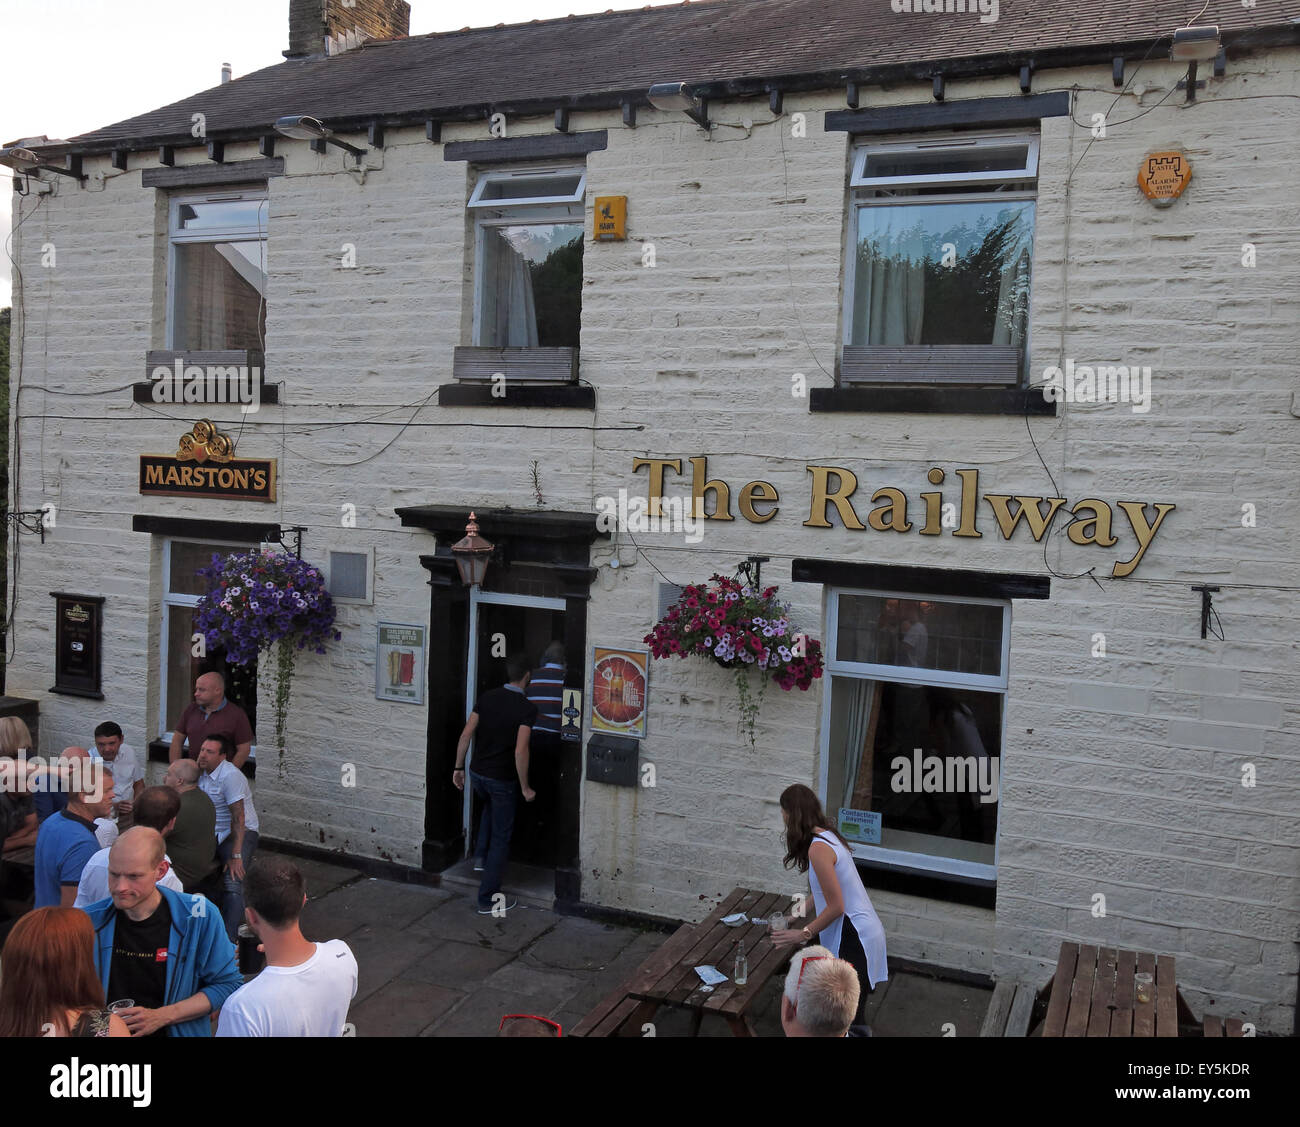 The railway Pub,Marsden, Kirklees, West Yorkshire,England,UK - Stock Image